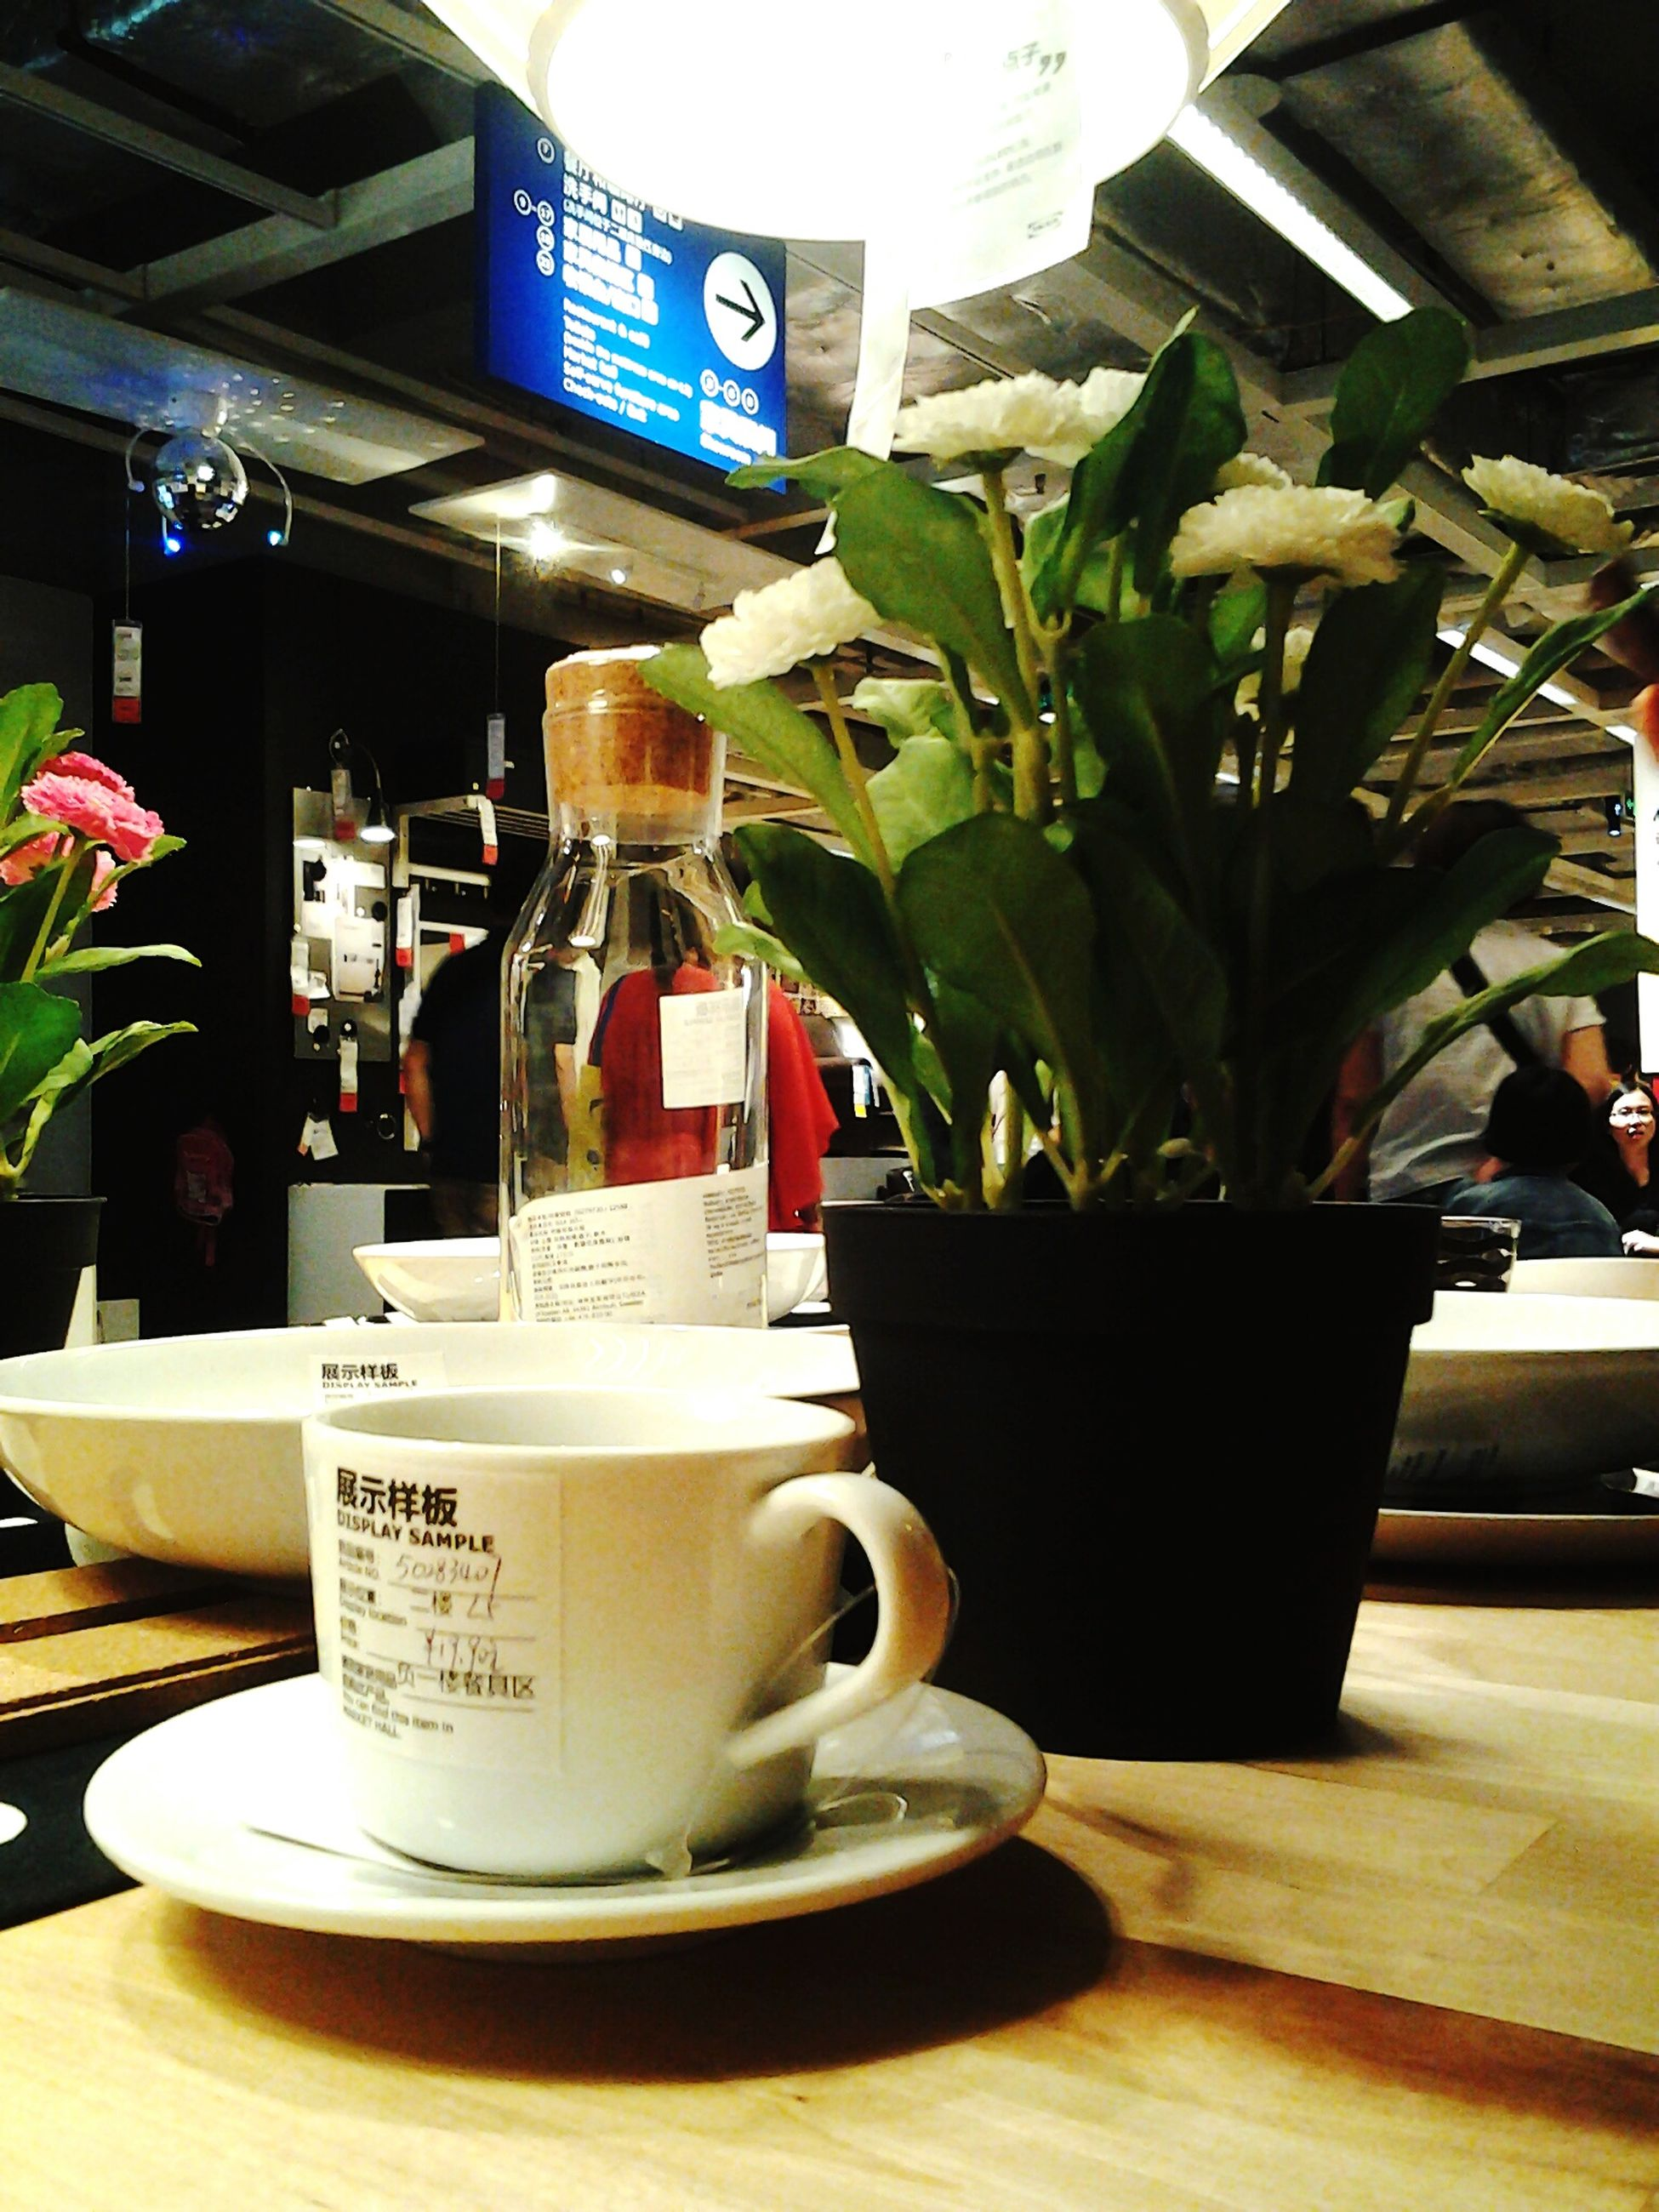 drink, table, text, food and drink, indoors, coffee cup, freshness, refreshment, western script, still life, communication, close-up, saucer, coffee - drink, cup, book, flower, no people, coffee, potted plant